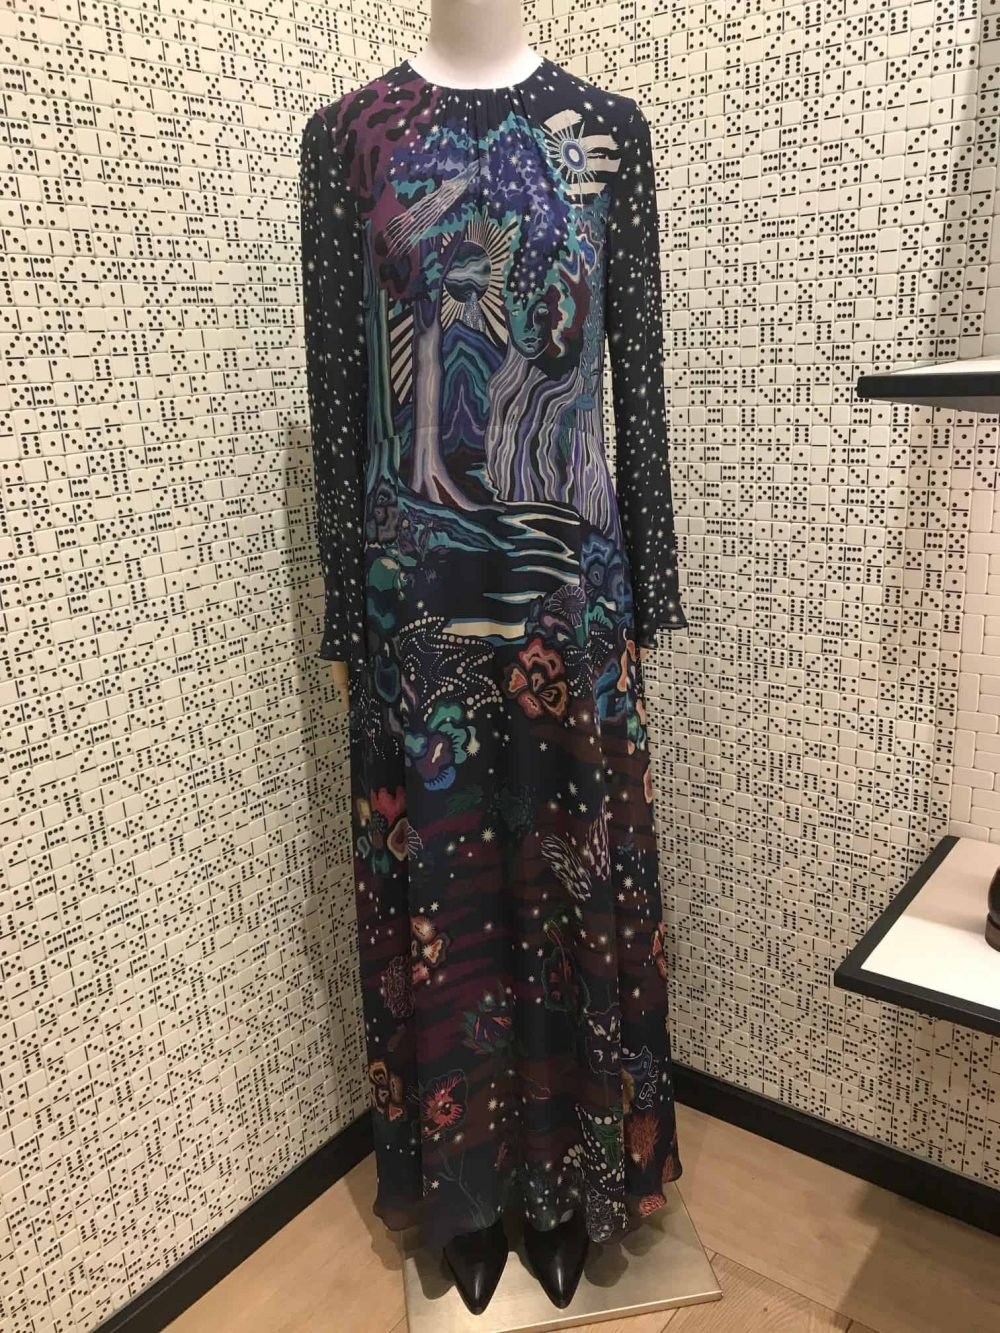 dress from fashion designer Paul Smith, Albemarle Street shop, Mayfair, Latest in Design Tour, Fashion Tours London, fashion walks and shopping tours for fashionistas